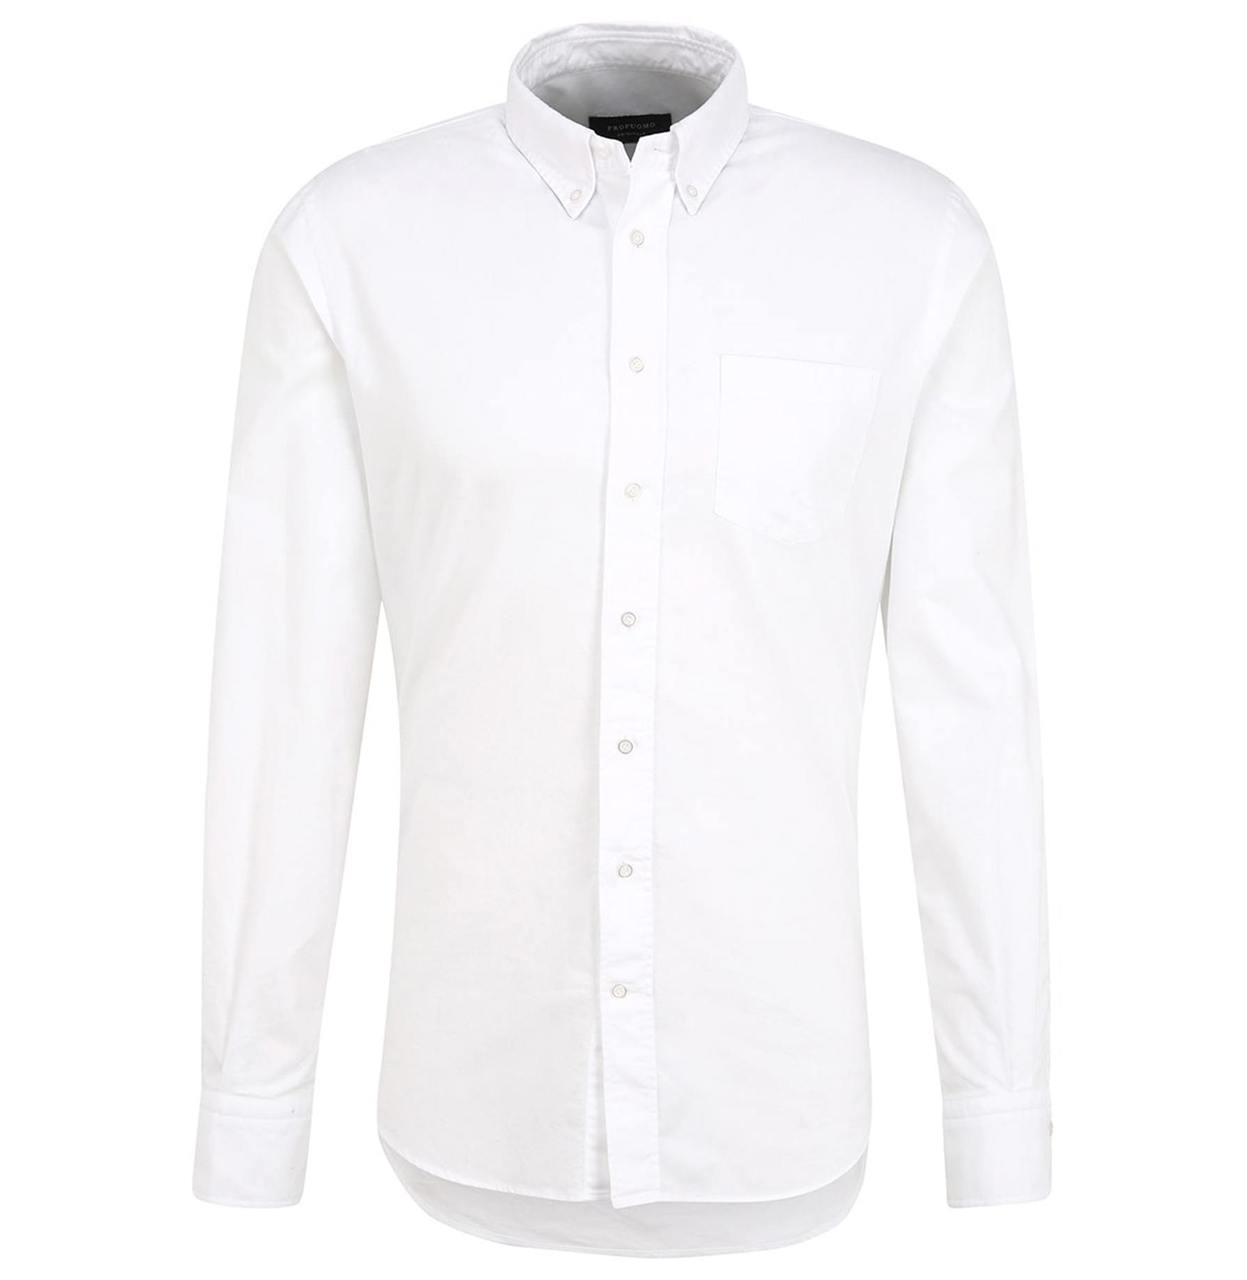 Profuomo Shirt PPSH1A1056 2 PPSH1A1056 wit Maat EEL